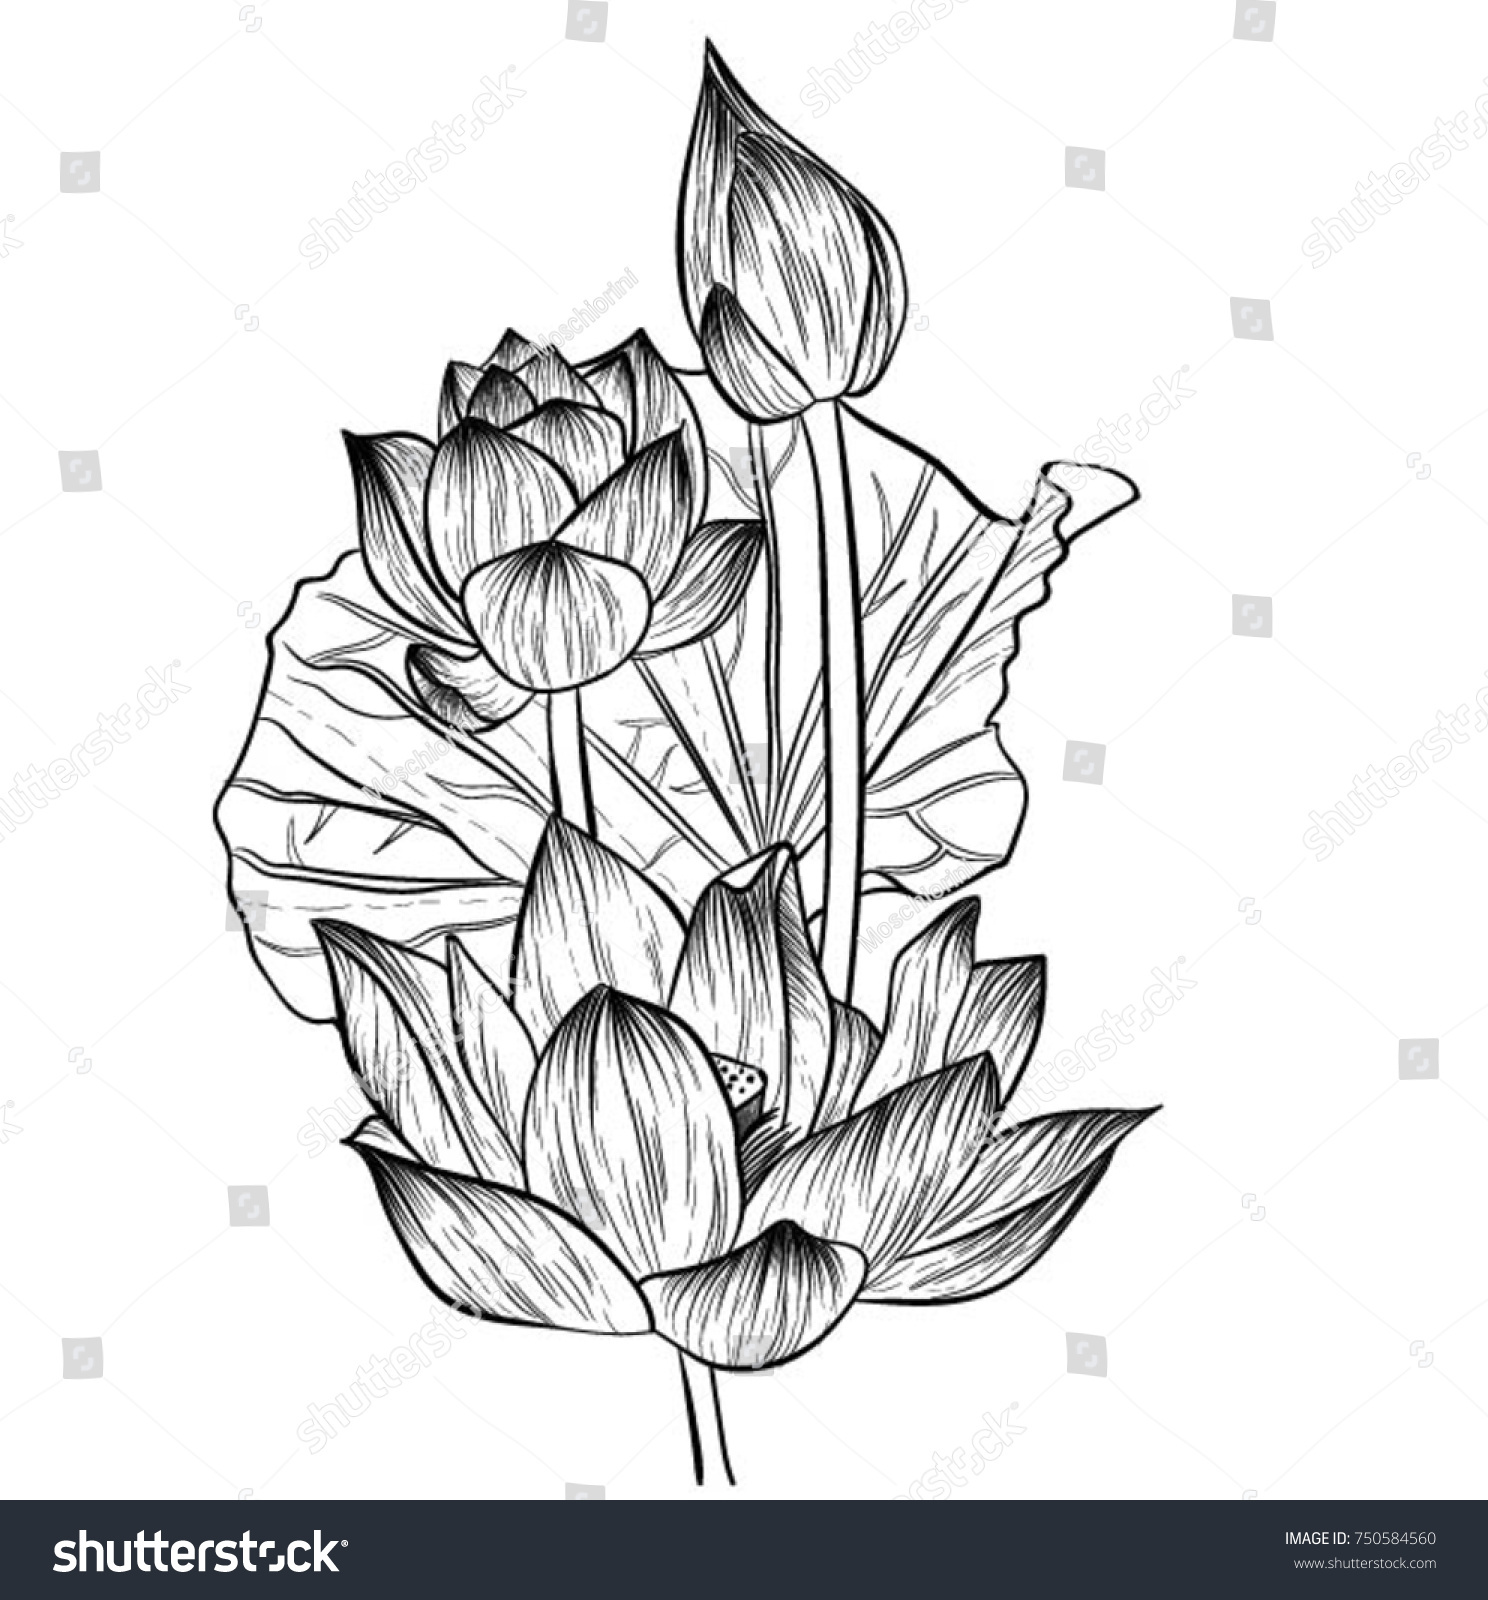 Handdrawn water lily flowers drawing lineart vector stock vector hand drawn water lily flowers drawing line artctor illustration and clip izmirmasajfo